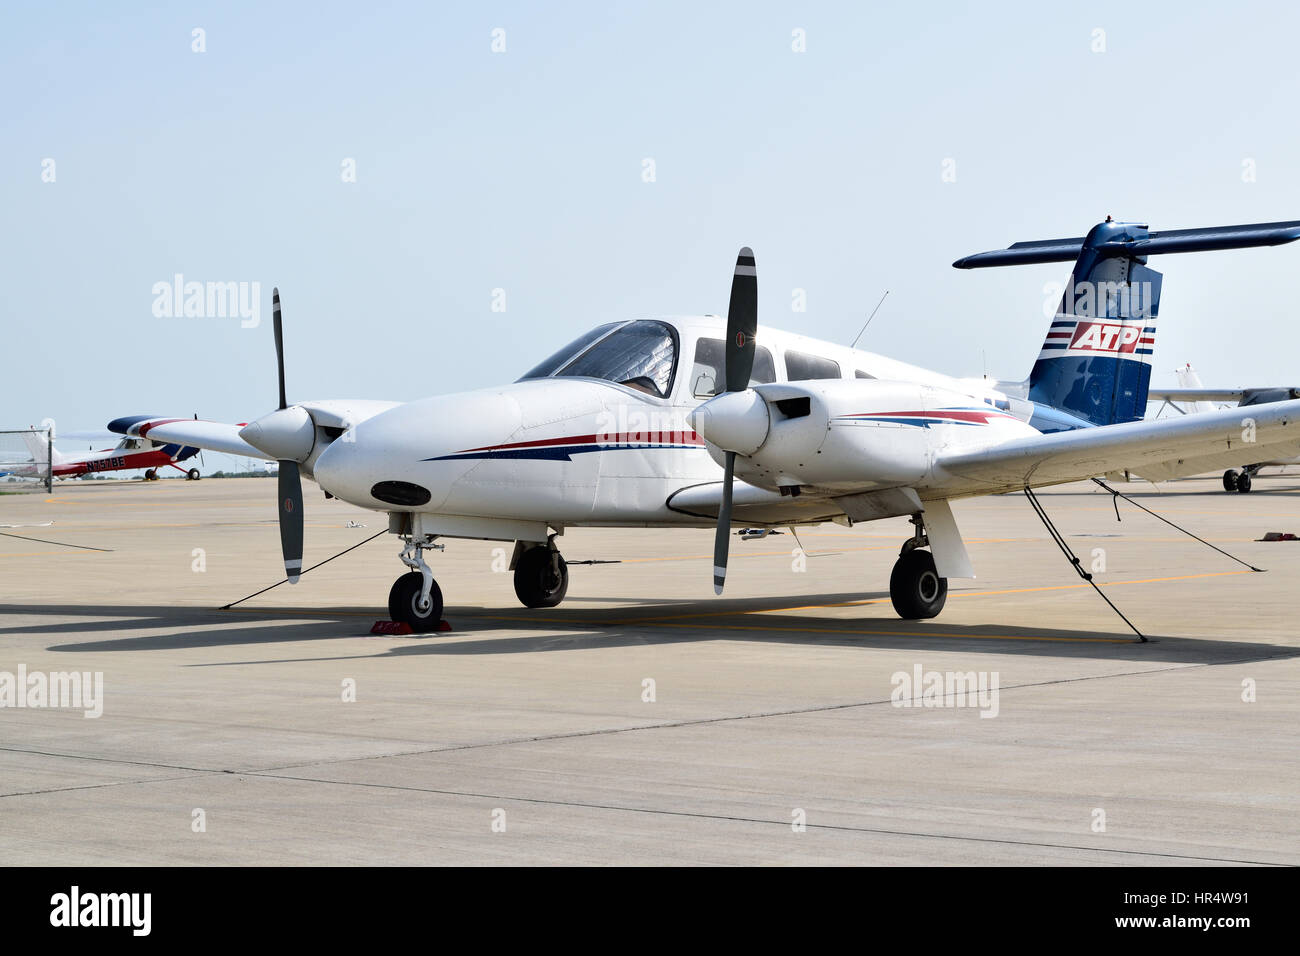 Small prop plane used for flight training at ATP flight